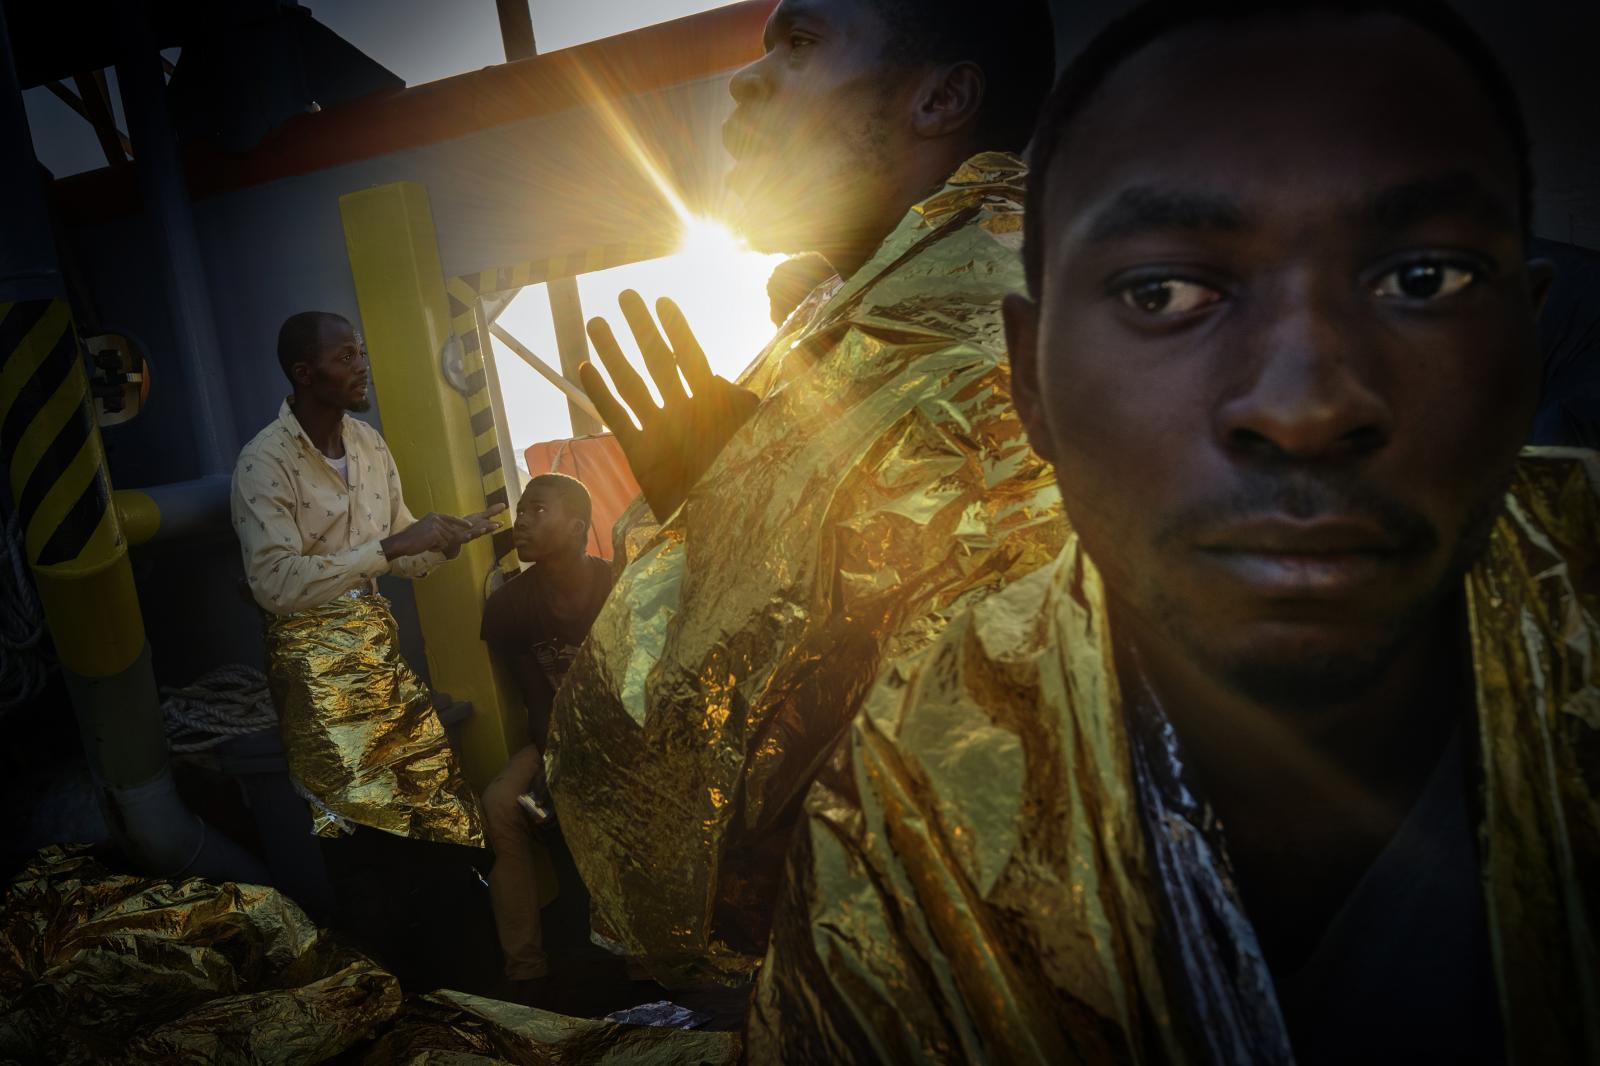 One of the refugees and migrants on board the rescue ship Bourbon Argos, also belonging to the NGO Doctors Without Borders, prays, offering thanks for being rescued.